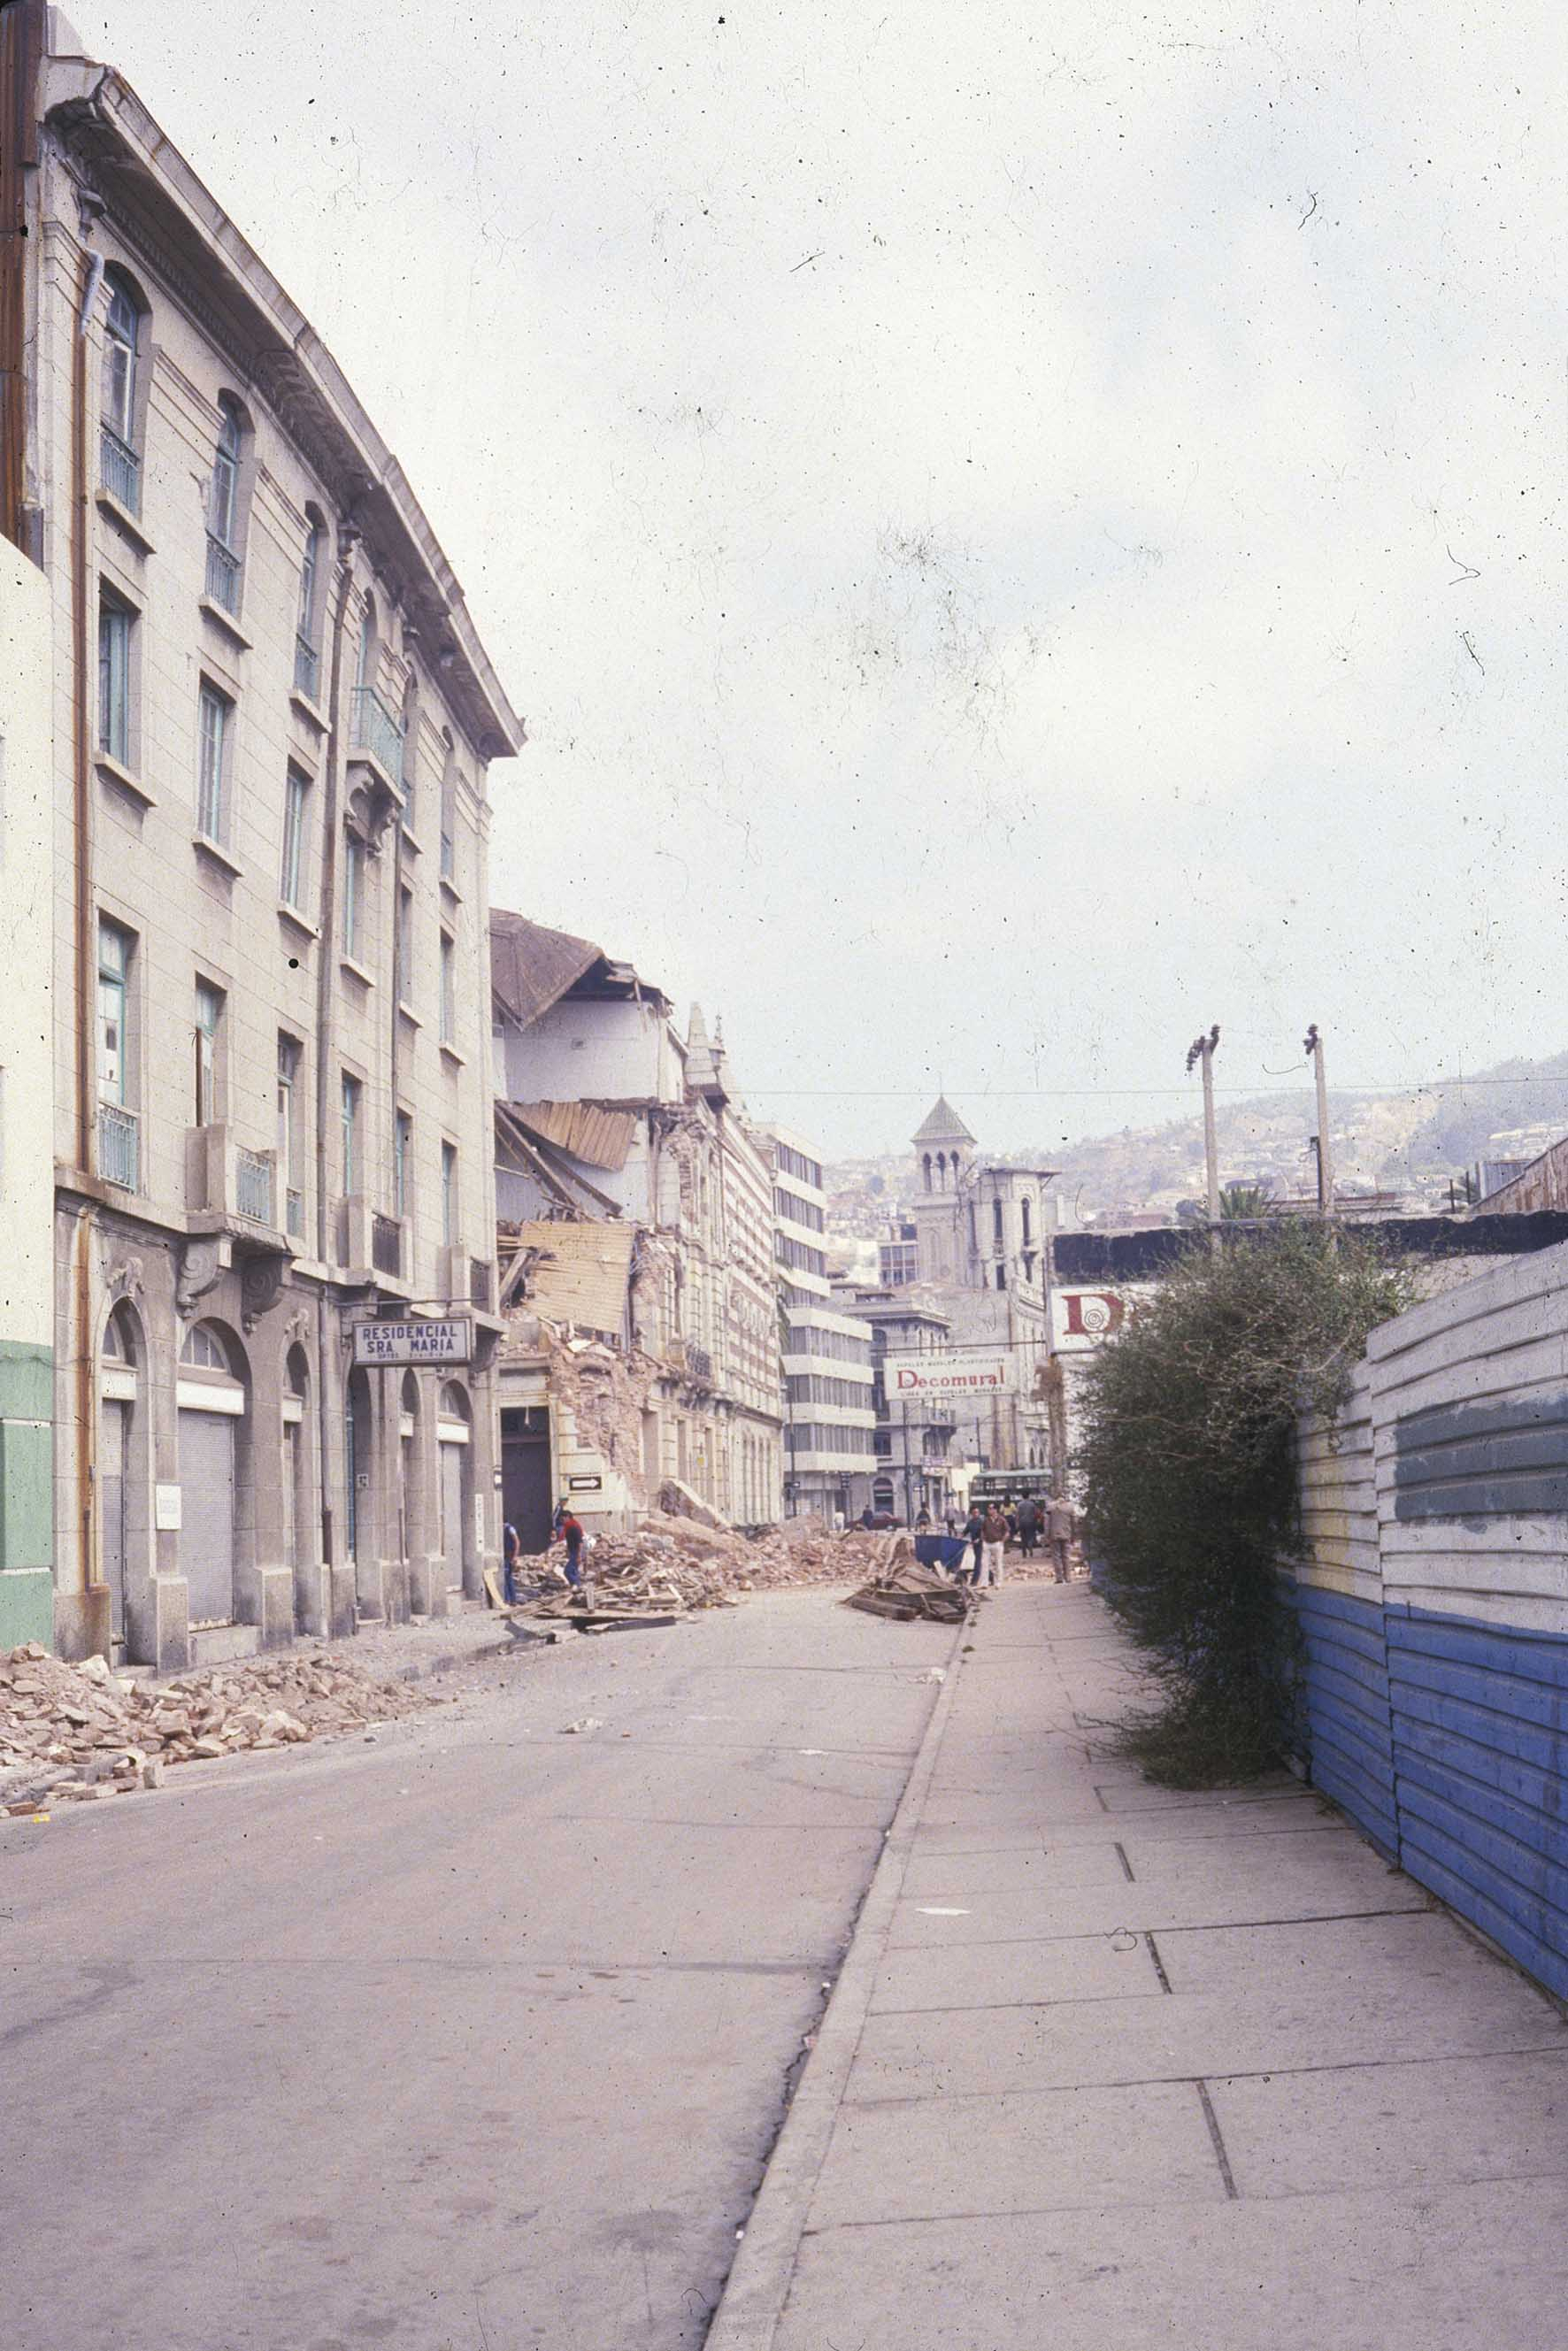 Enterreno - Fotos históricas de chile - fotos antiguas de Chile - Calle Edwards de  Valparaíso en 1985